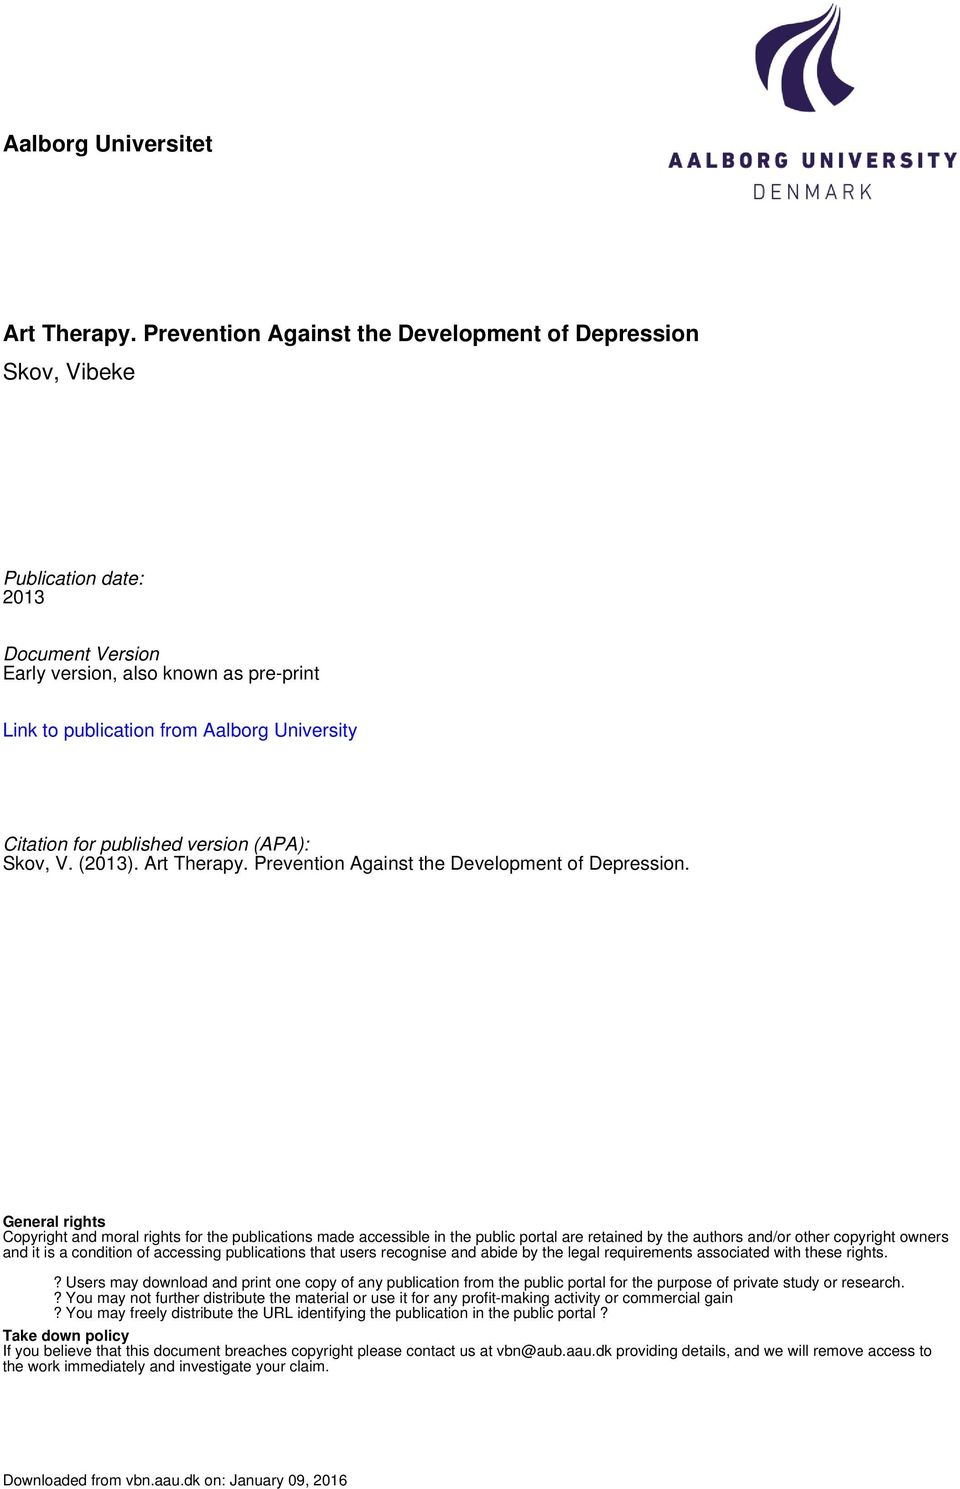 published version (APA): Skov, V. (2013). Art Therapy. Prevention Against the Development of Depression.